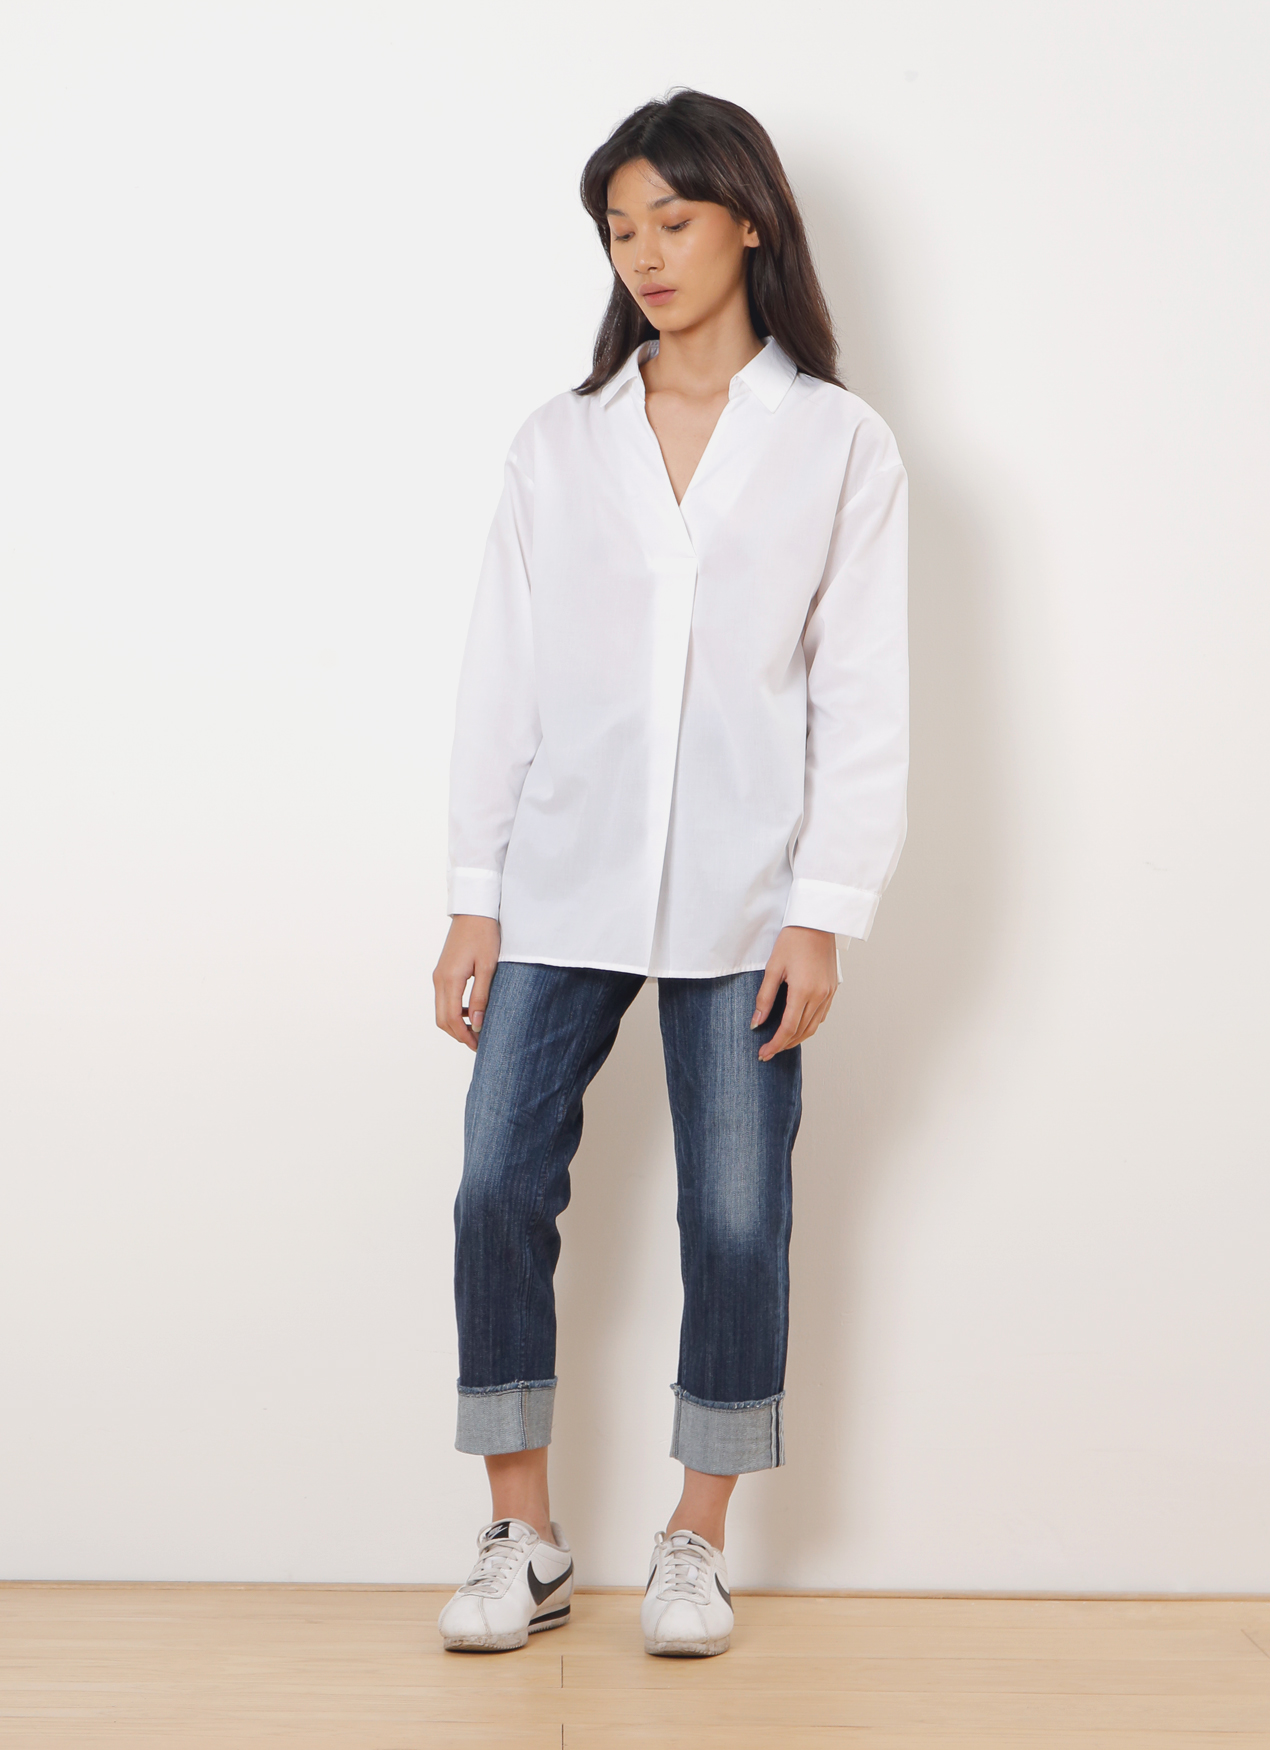 Sevendays Sunday White Barbara Longsleeve Blouse - Off White